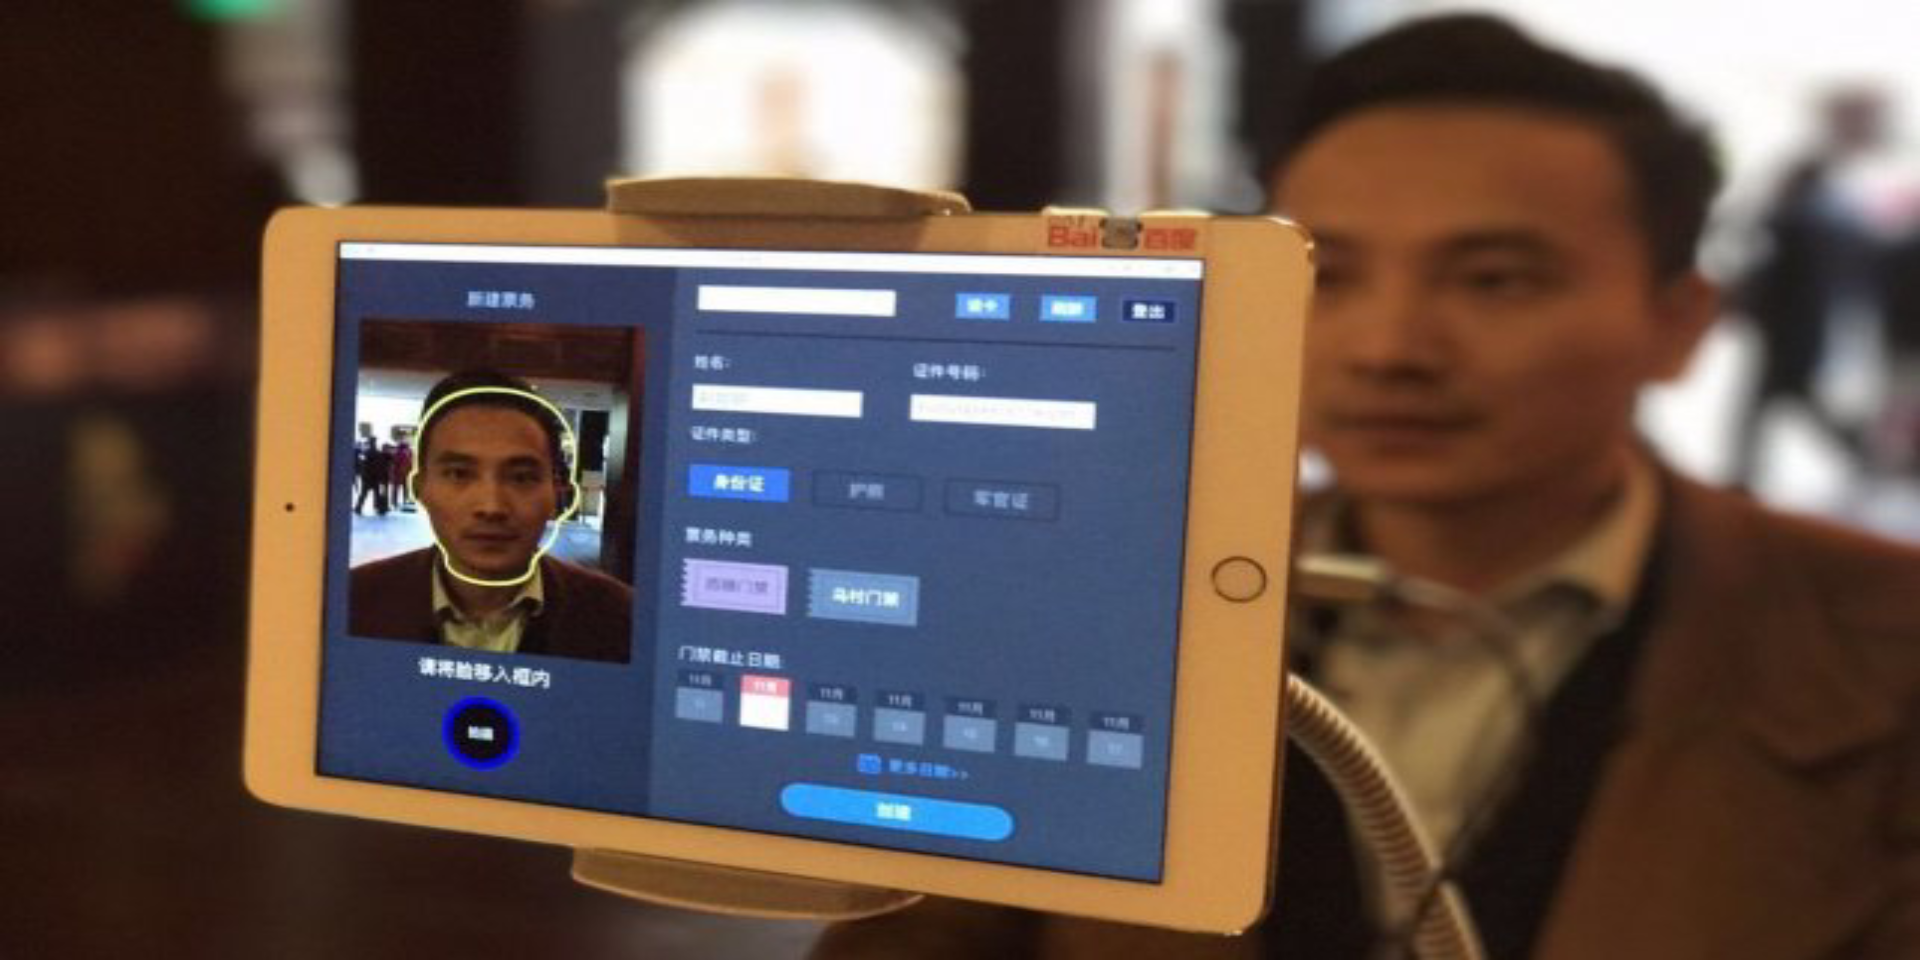 Facing the future: facial recognition the future of hotel check-ins